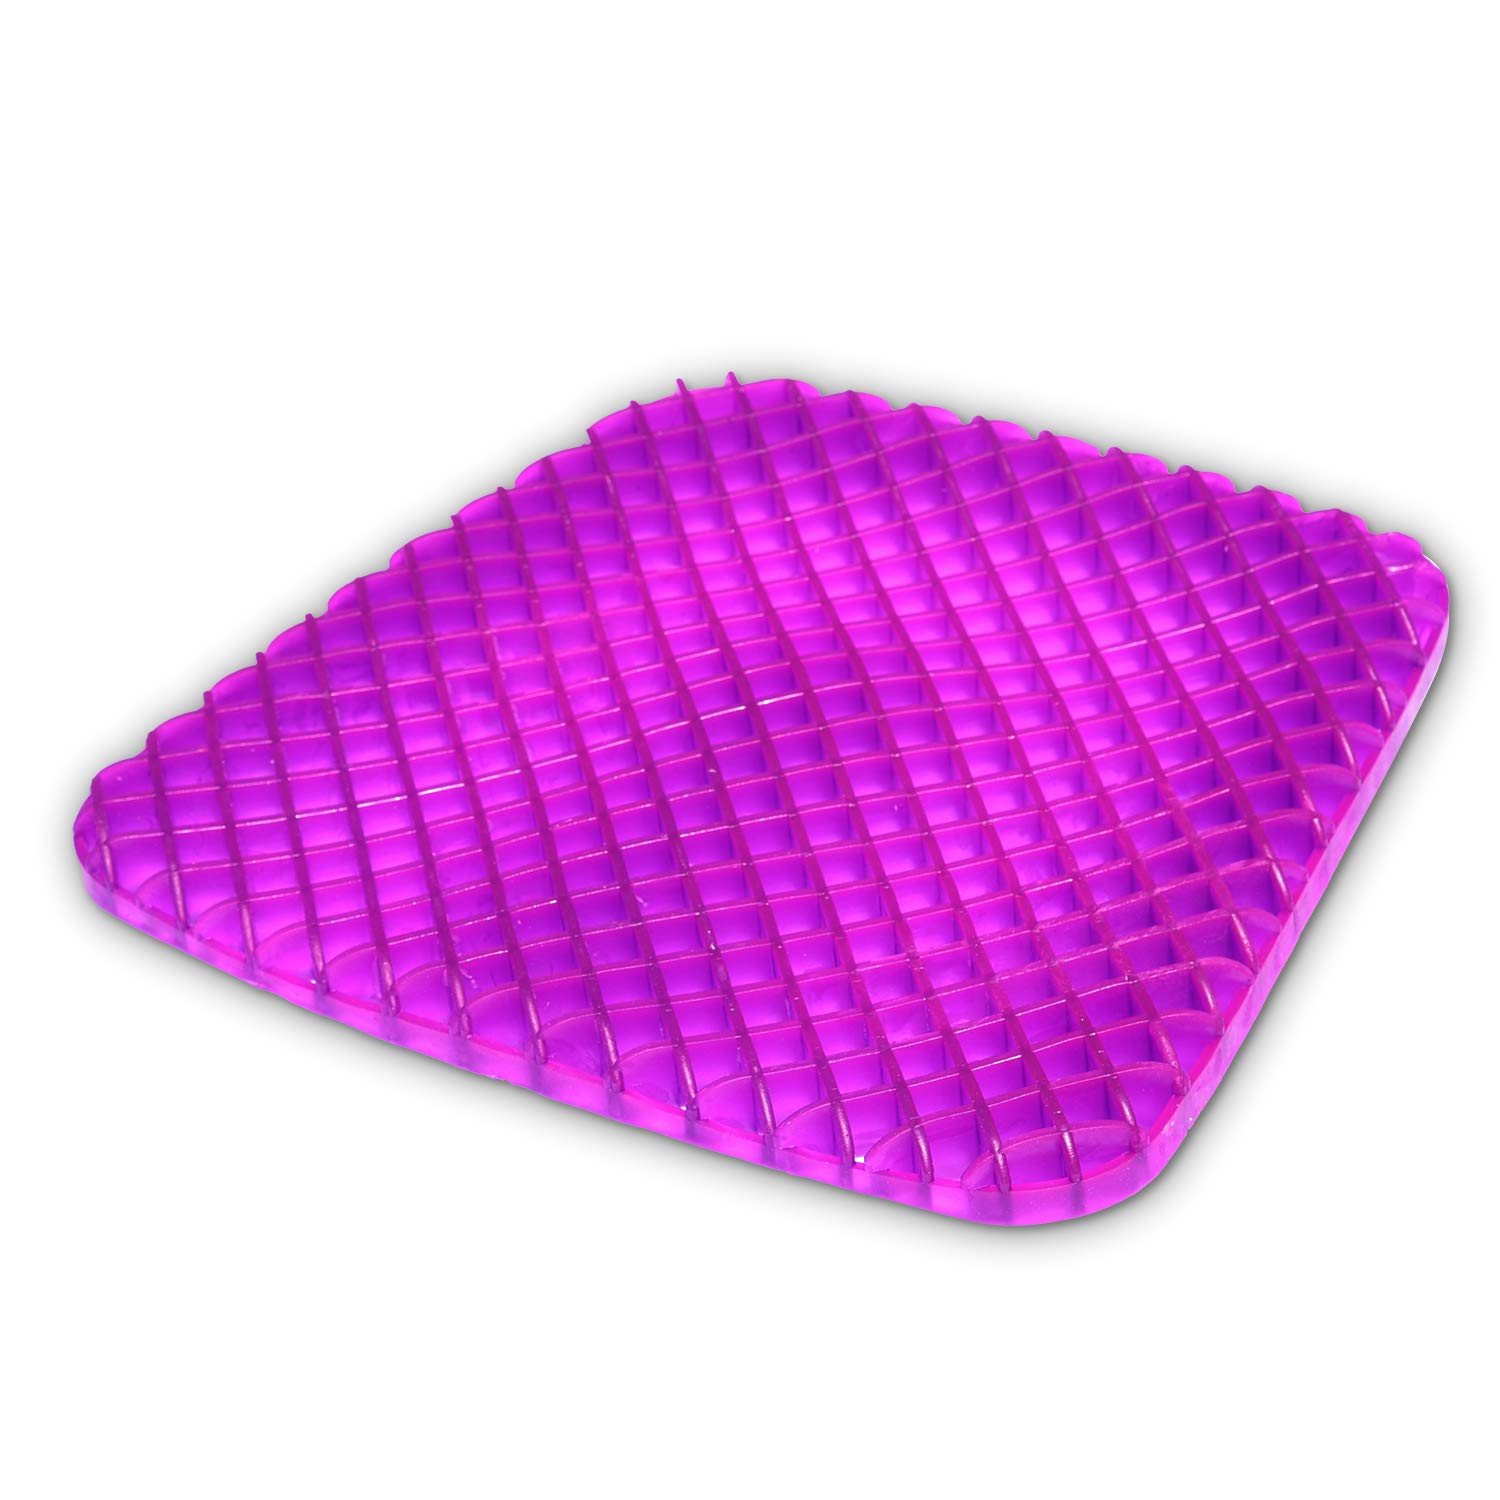 Gel Seat Cushion Comfort Purple Honeycomb Egg Crate Design Gel Pad Provides Excellent Support For Lower Back, Spine, Hips Promotes Venting & Good Sitting Posture For Office Chair Car Sitter Wheelchair